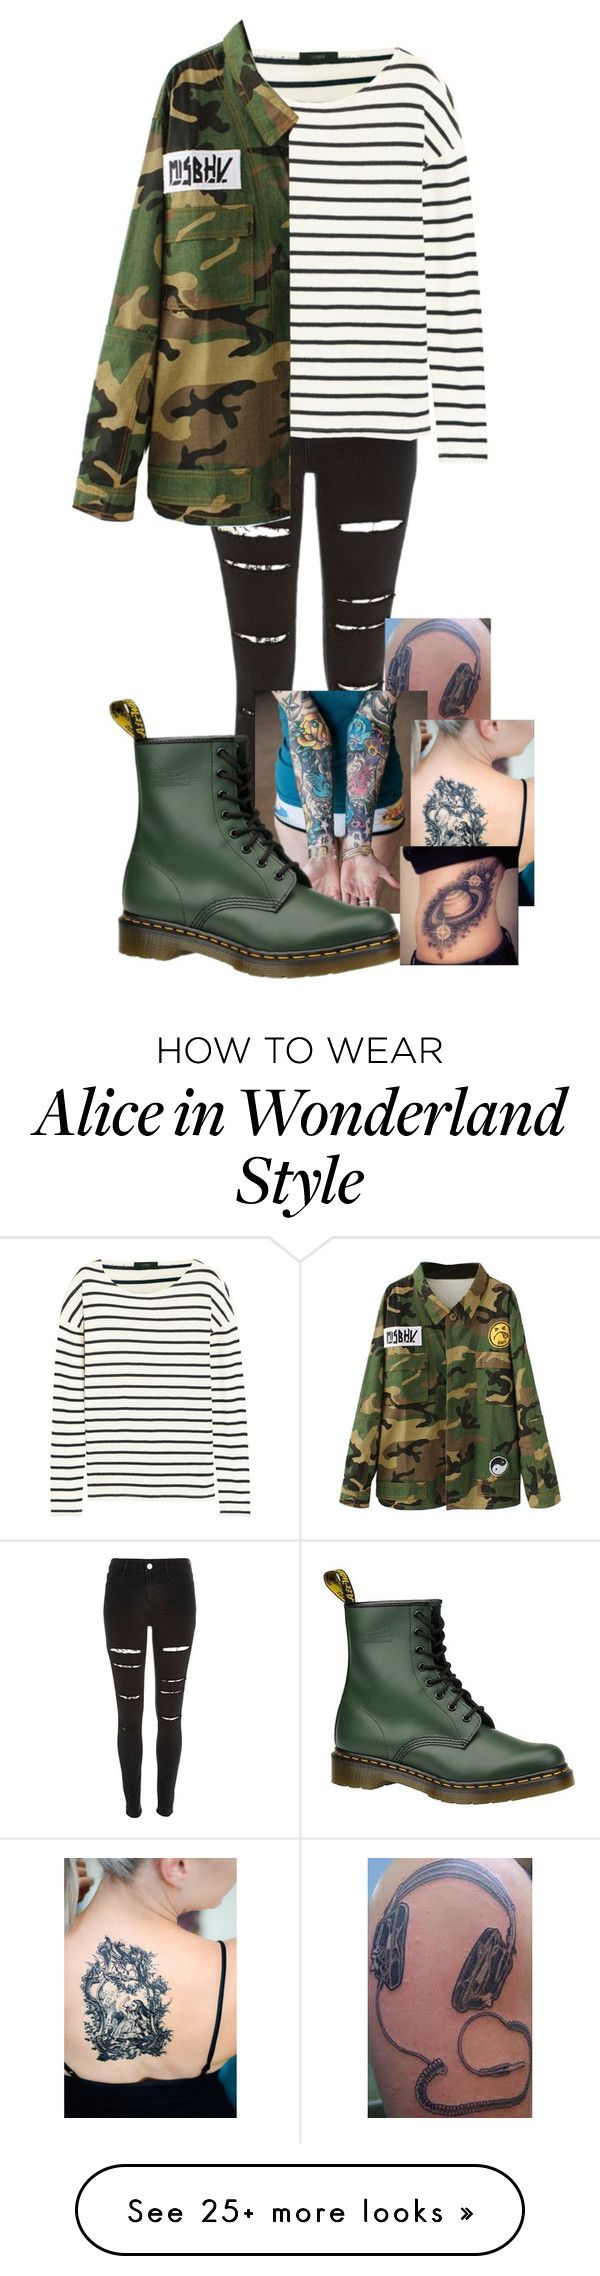 """""""Untitled #307"""" by londoner6401 on Polyvore featuring River Island, J.Crew and Dr. Martens"""